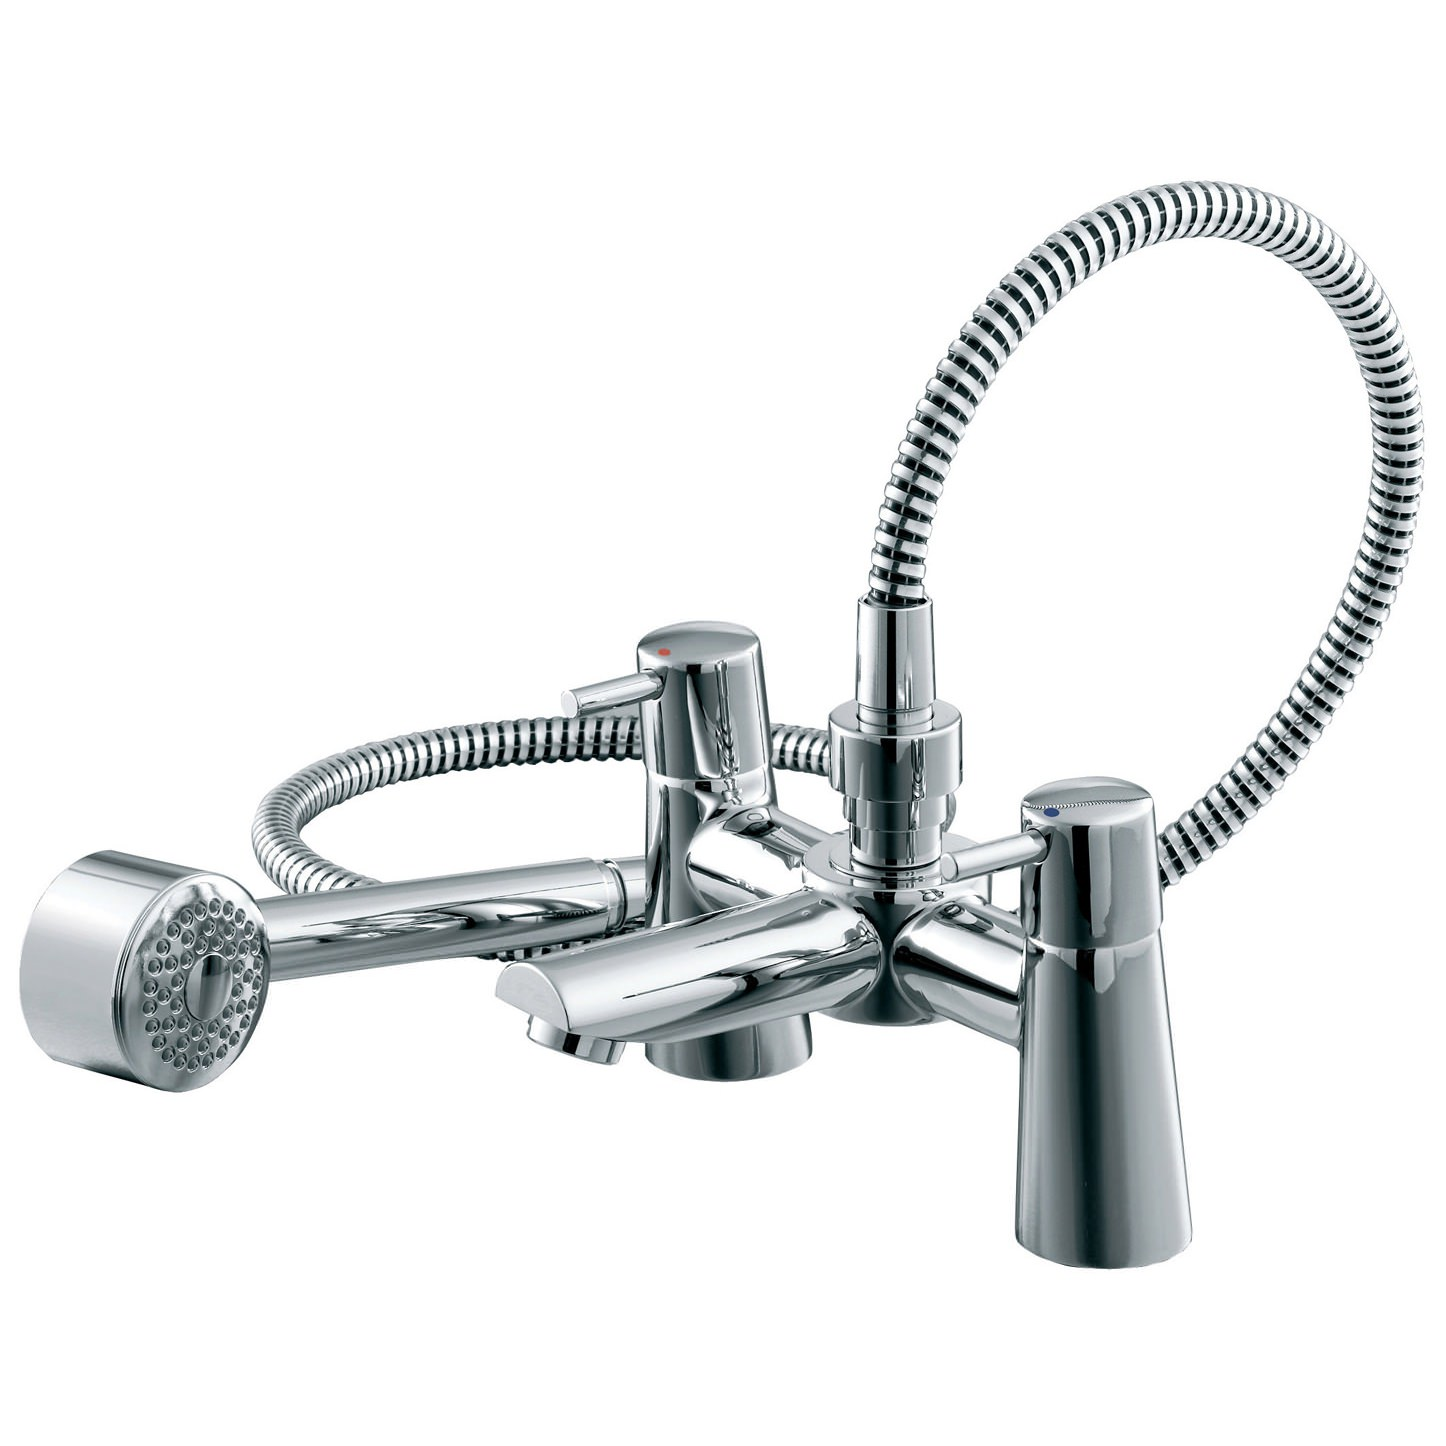 ideal standard cone bath shower mixer tap with shower kit. Black Bedroom Furniture Sets. Home Design Ideas